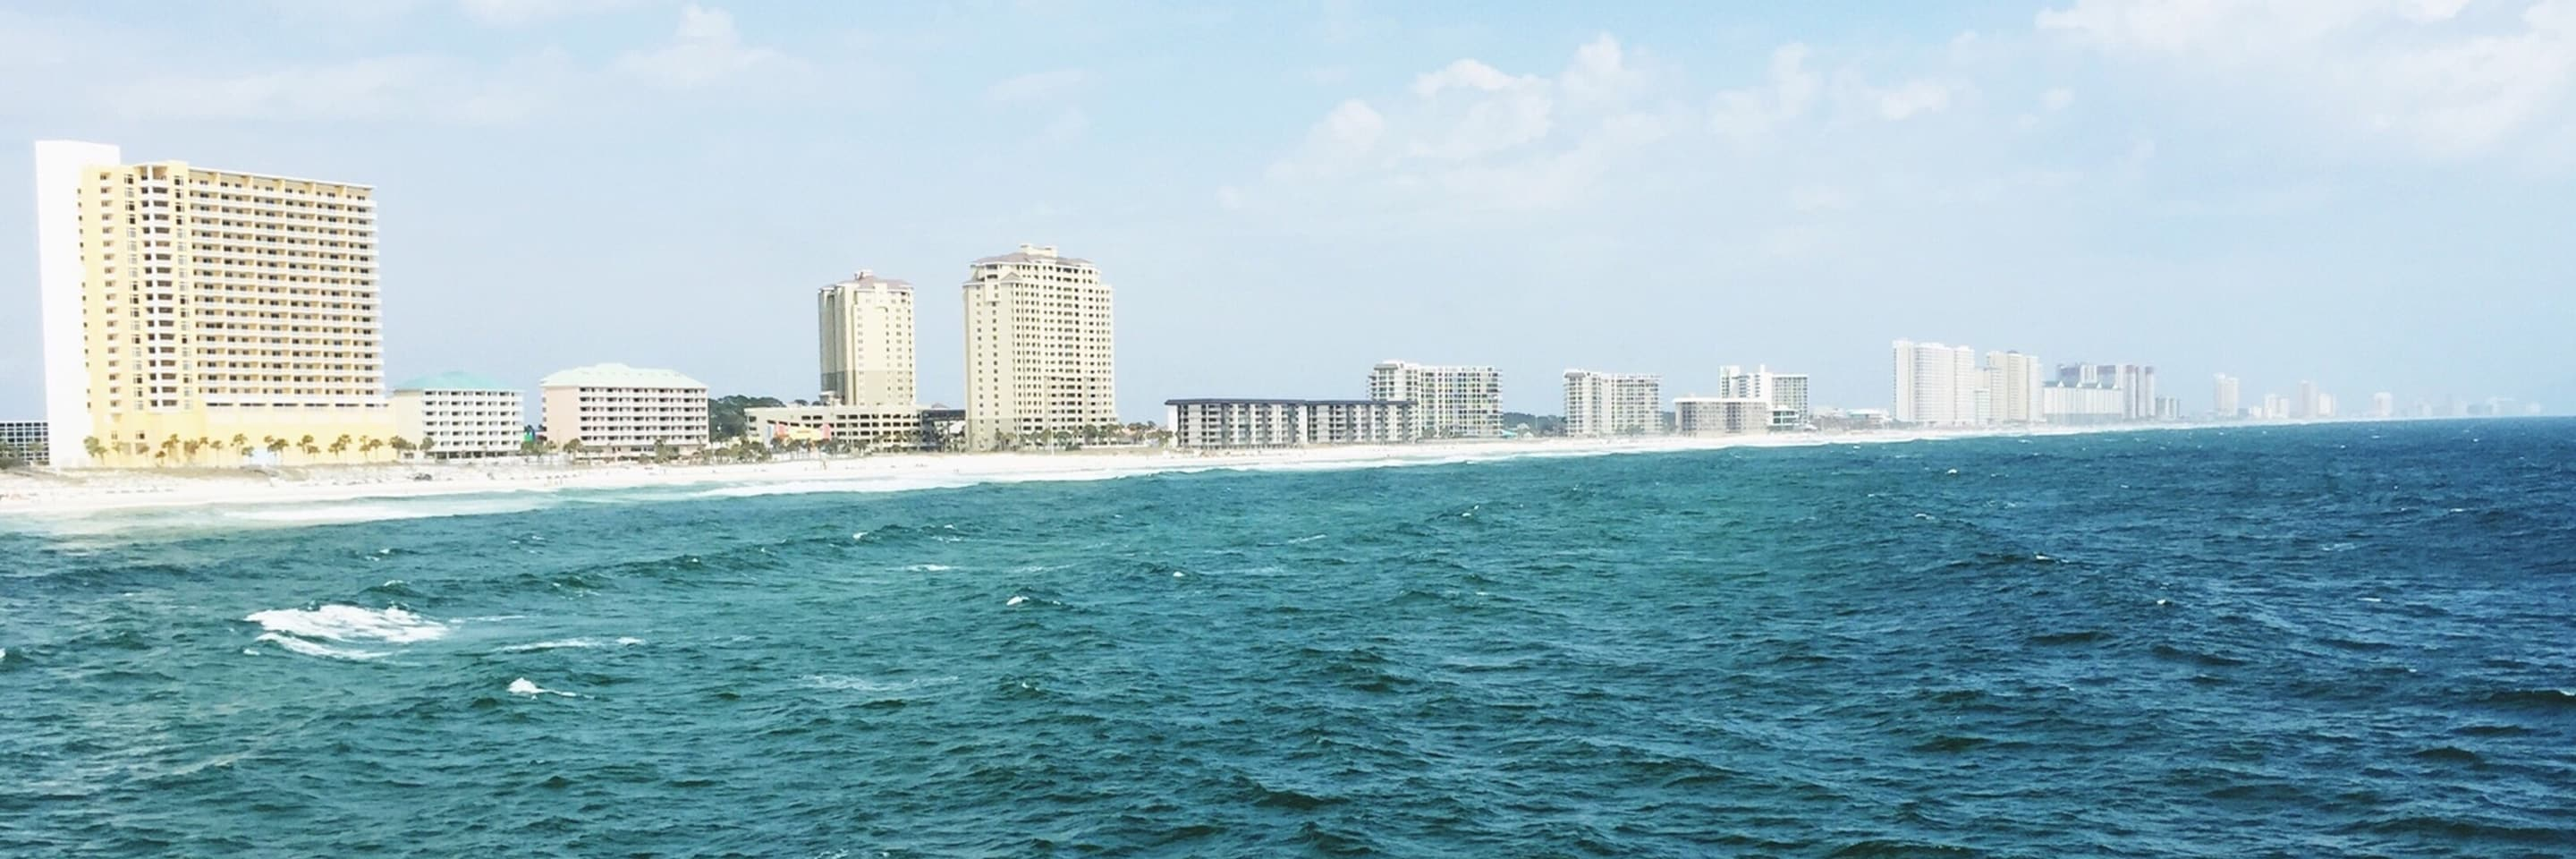 Hotels In Panama City Beach >> Top Hotels In Pcb Marriott Panama City Beach Hotels